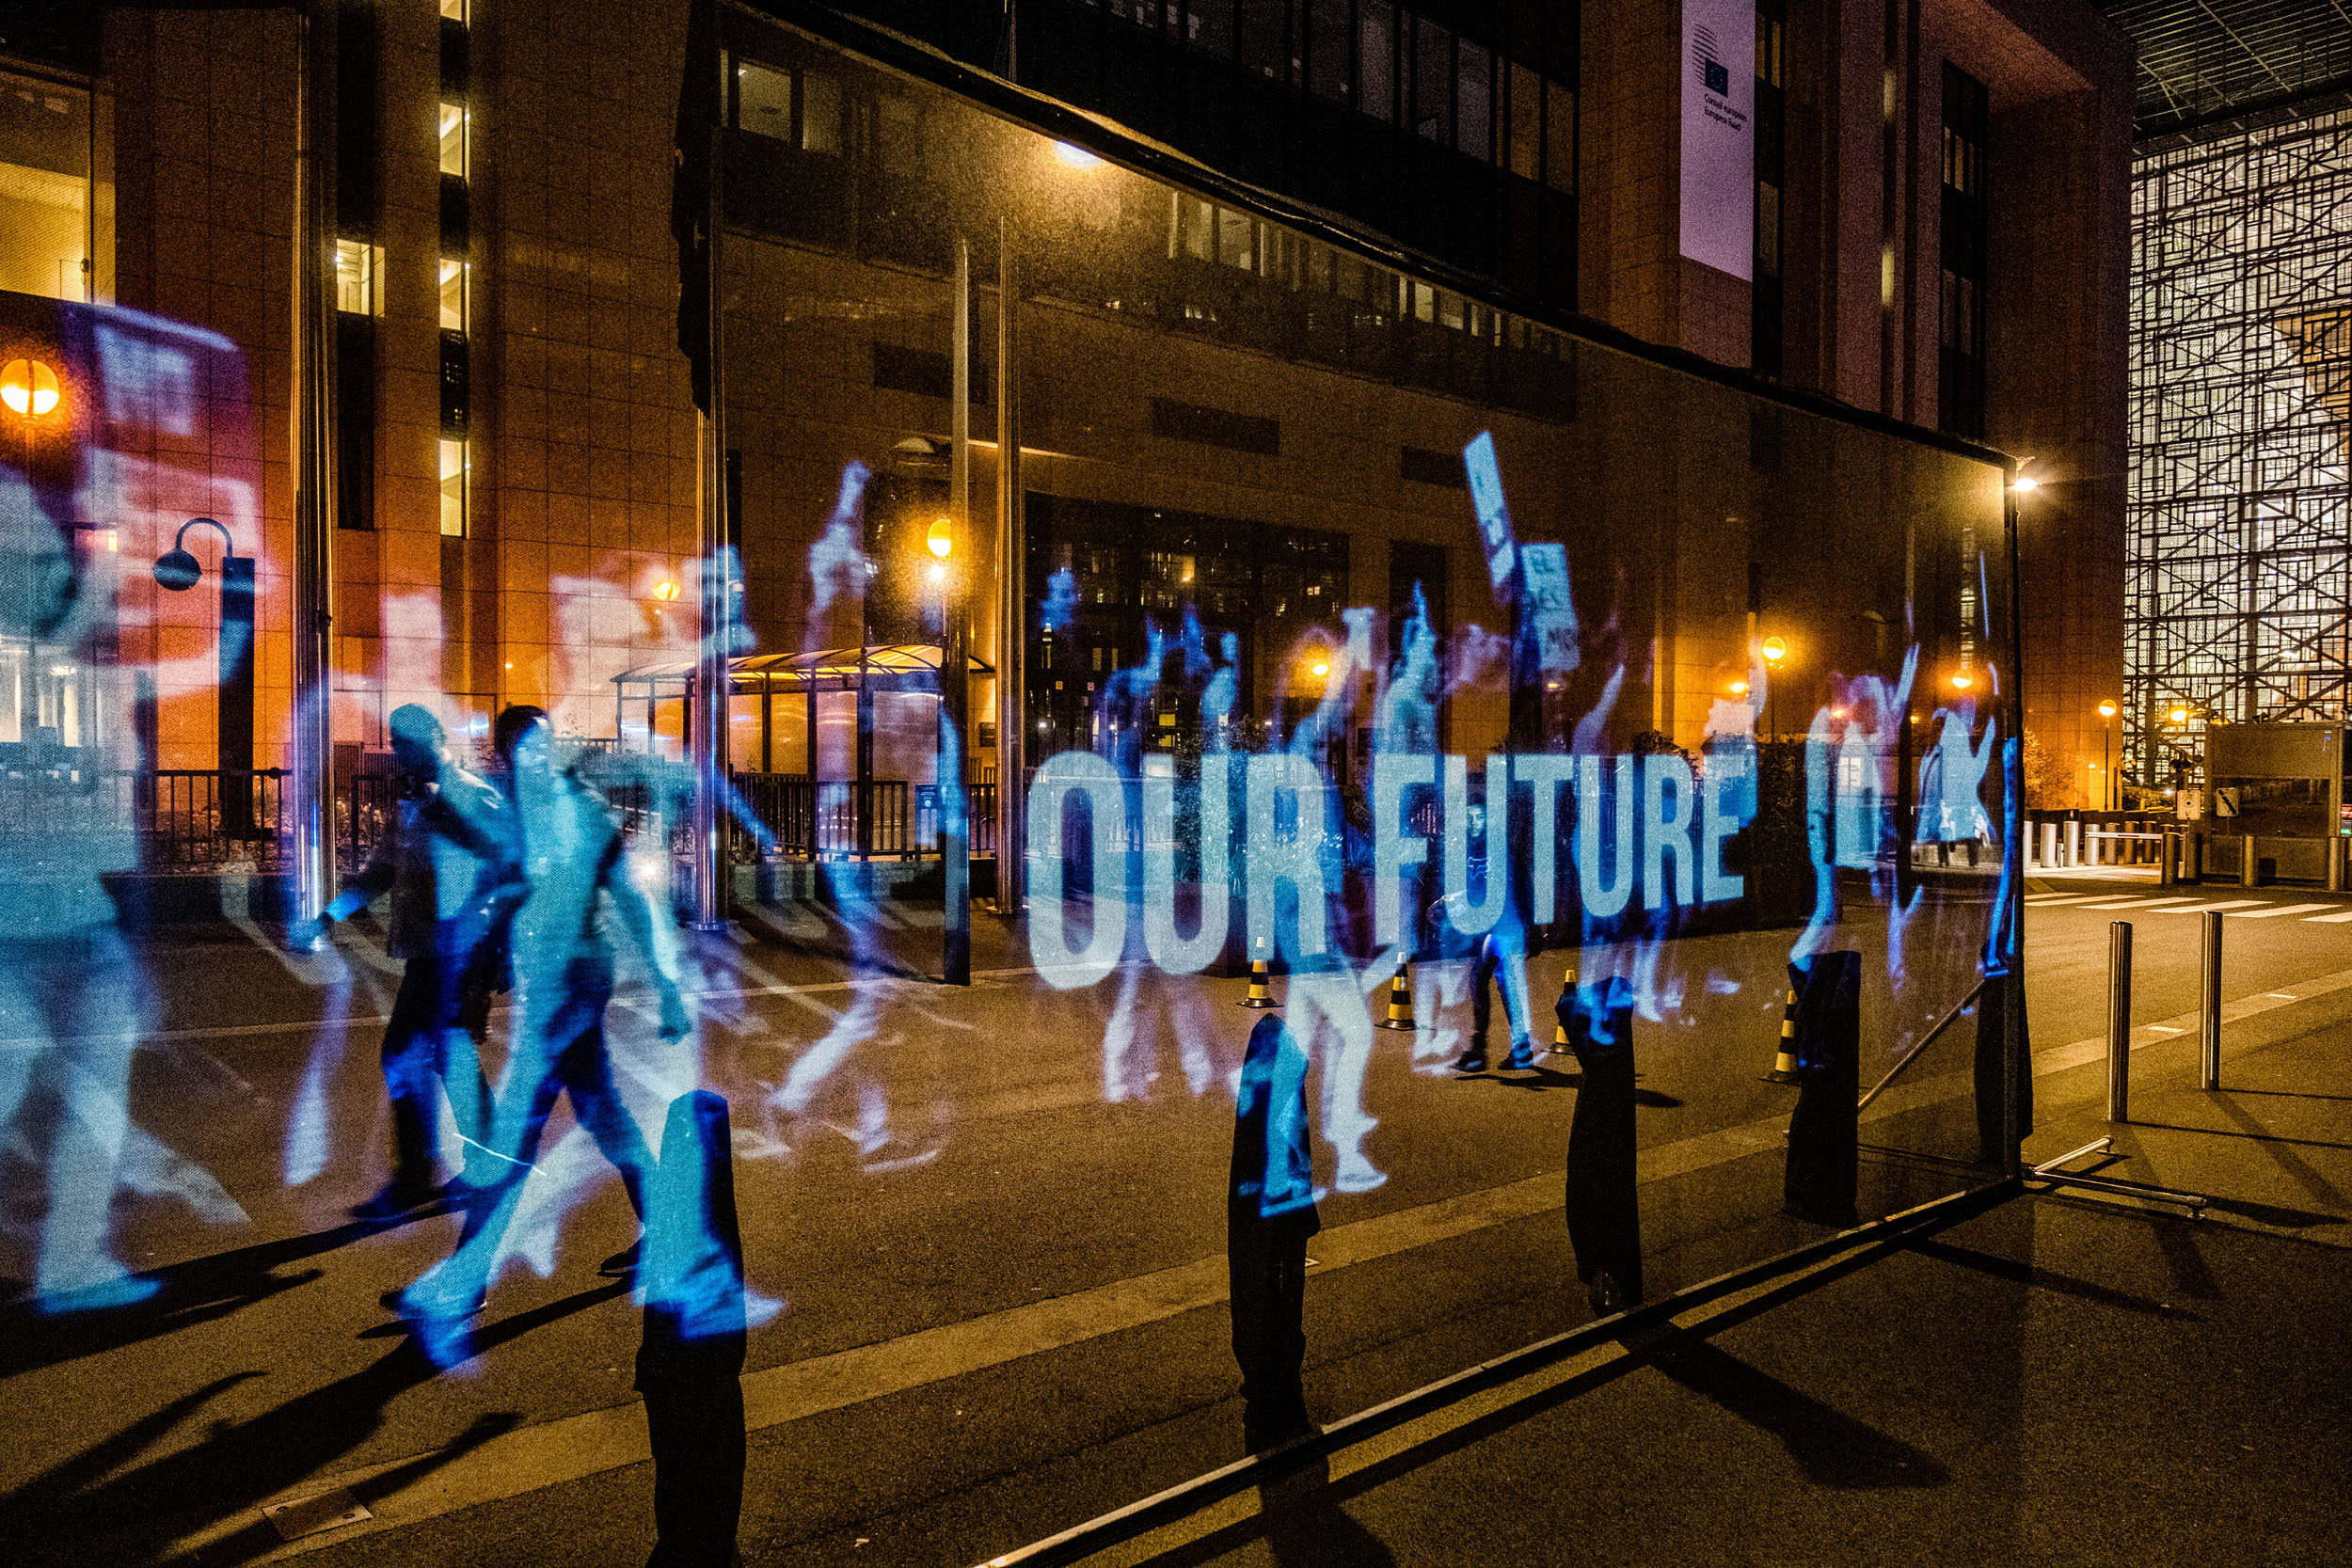 A holographic projection of people marching with a banner reading 'Our future', on a city street at night.